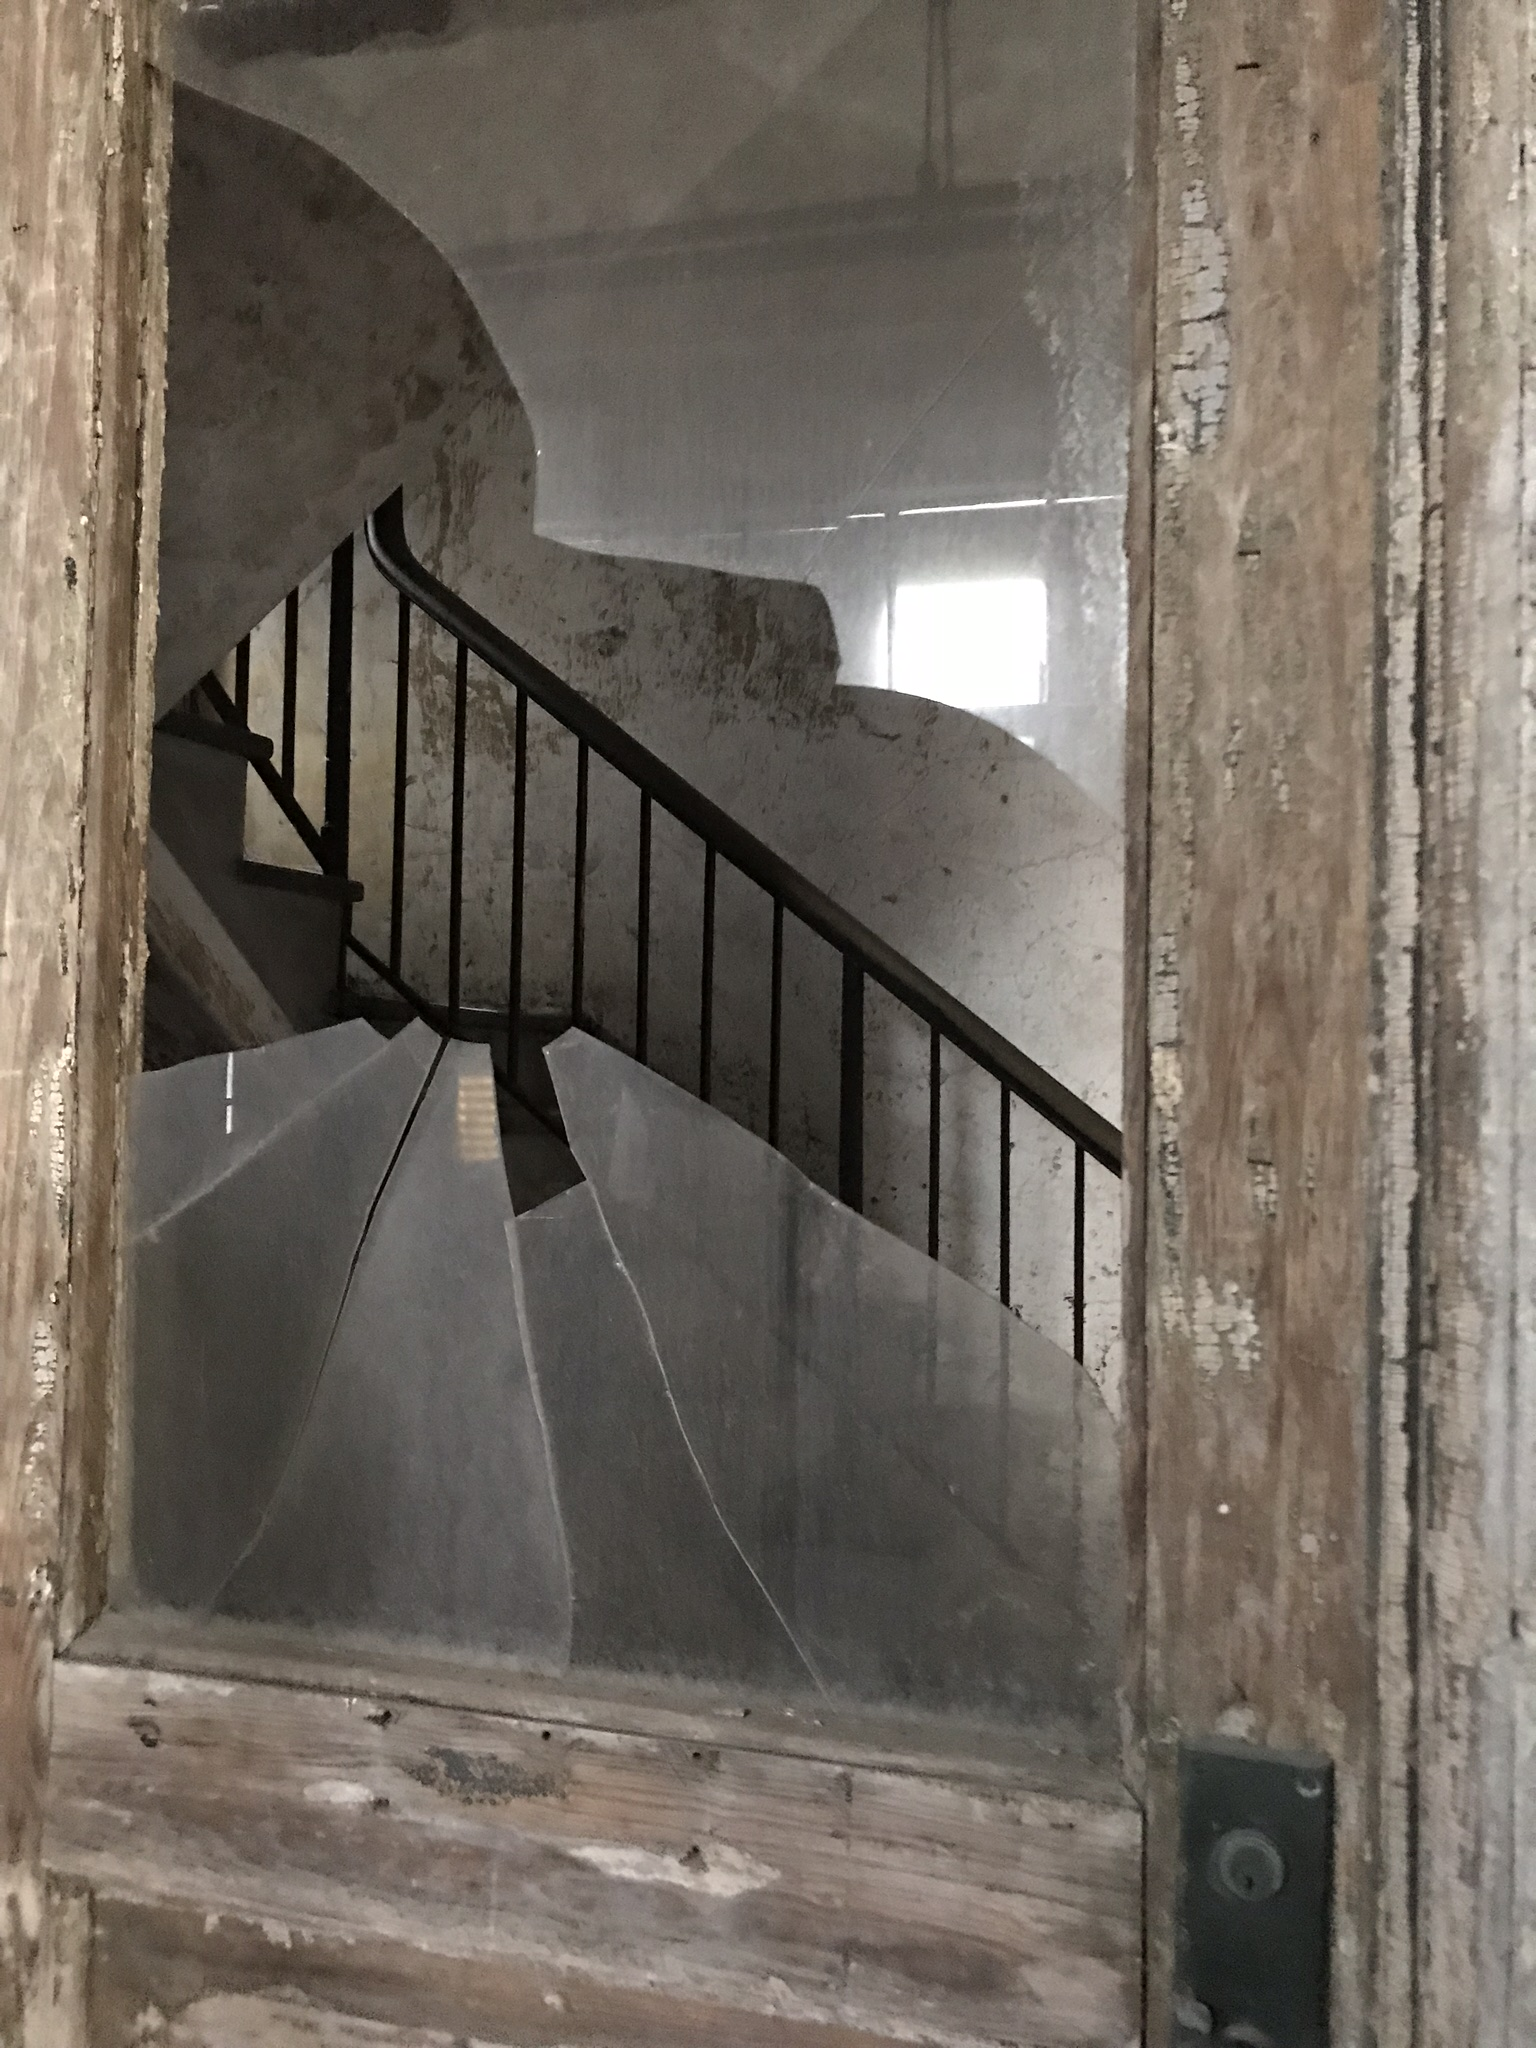 Staircase to the 3rd floor of the hospital.